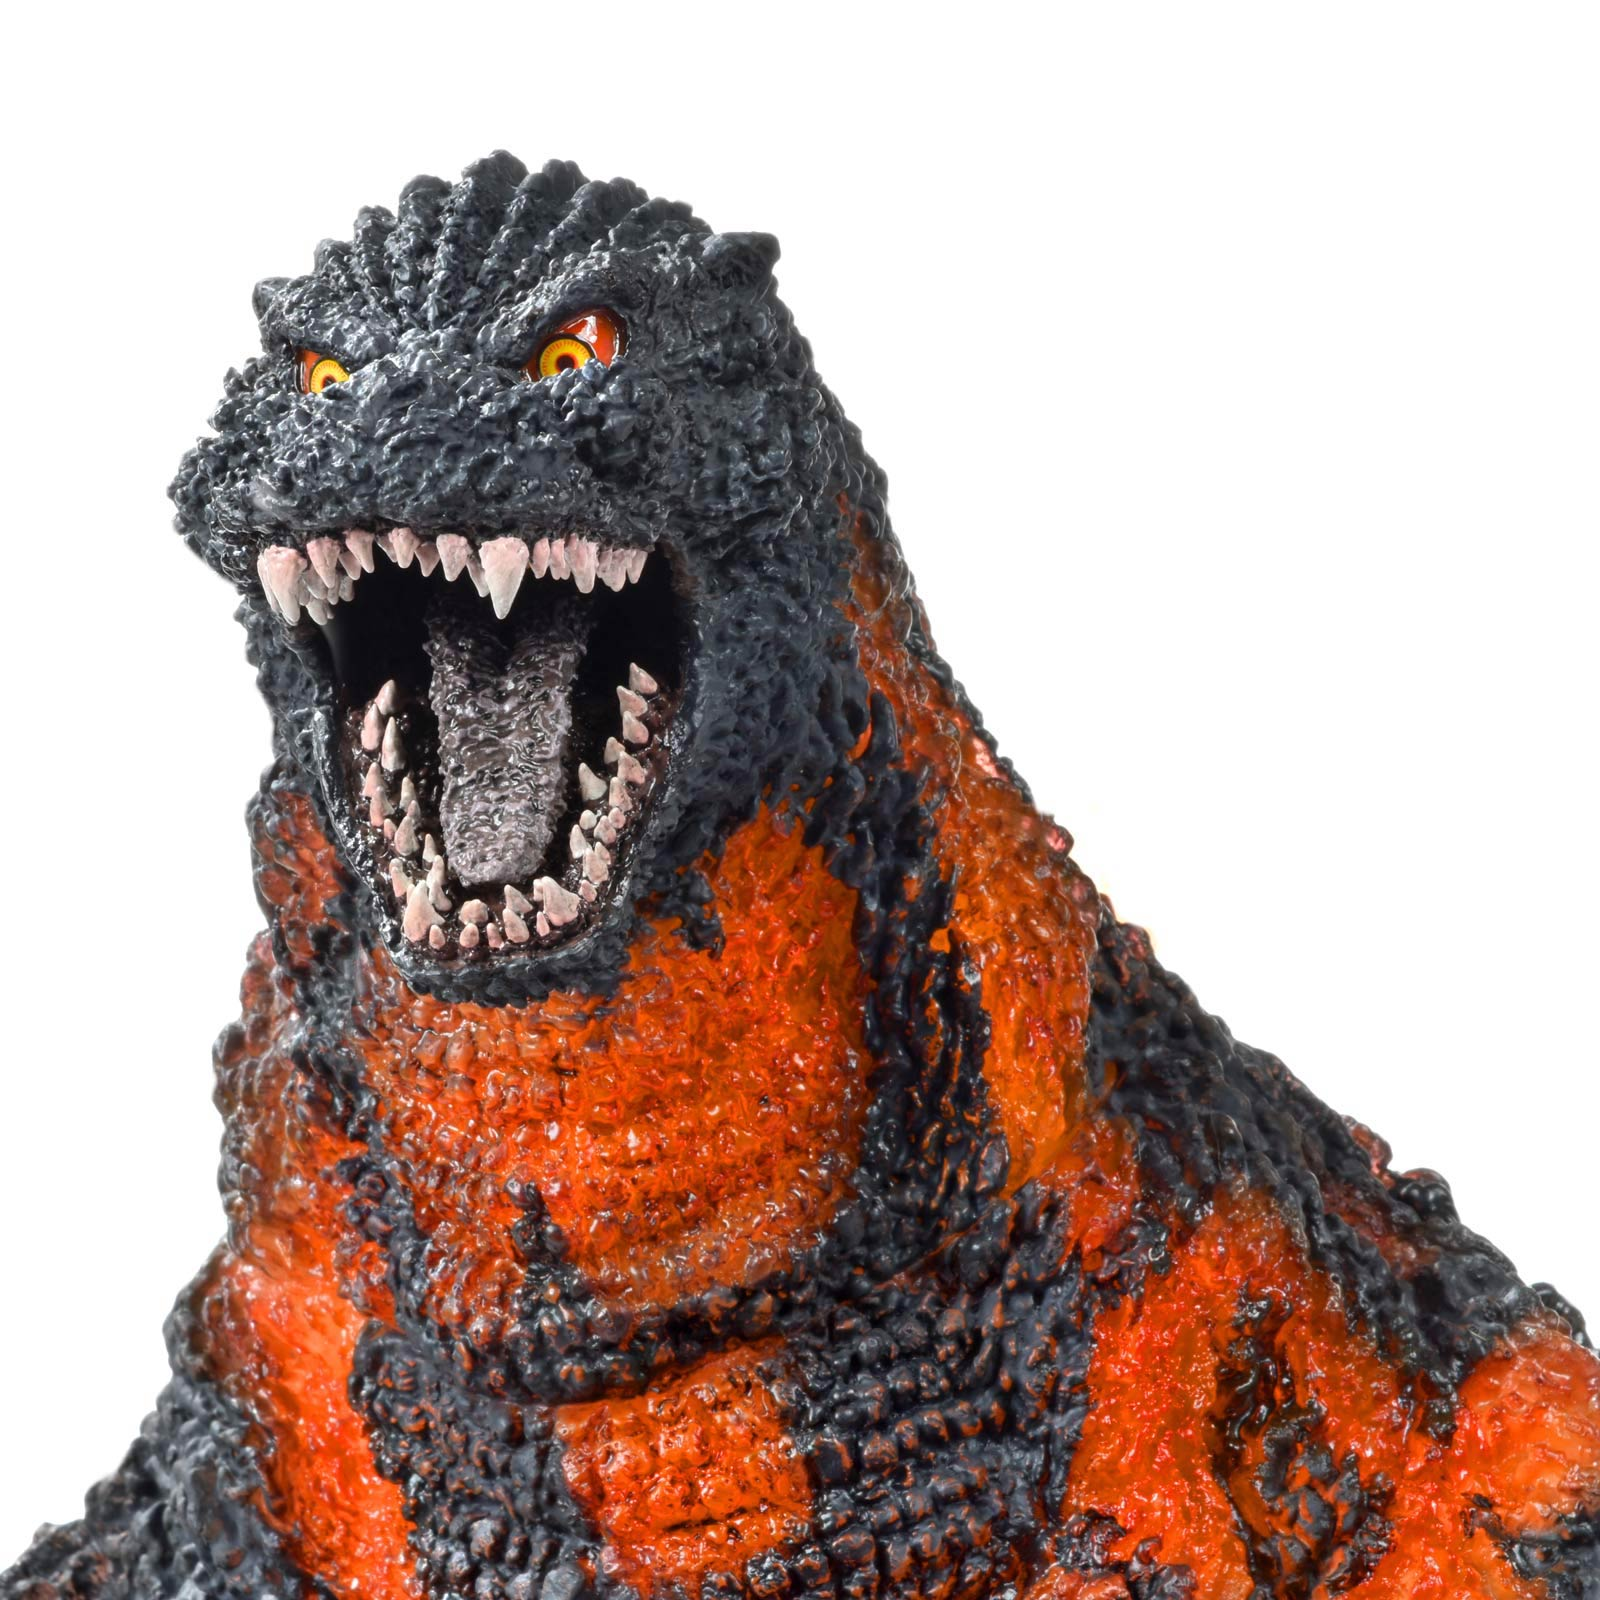 Limited Edition X-Plus Godzilla